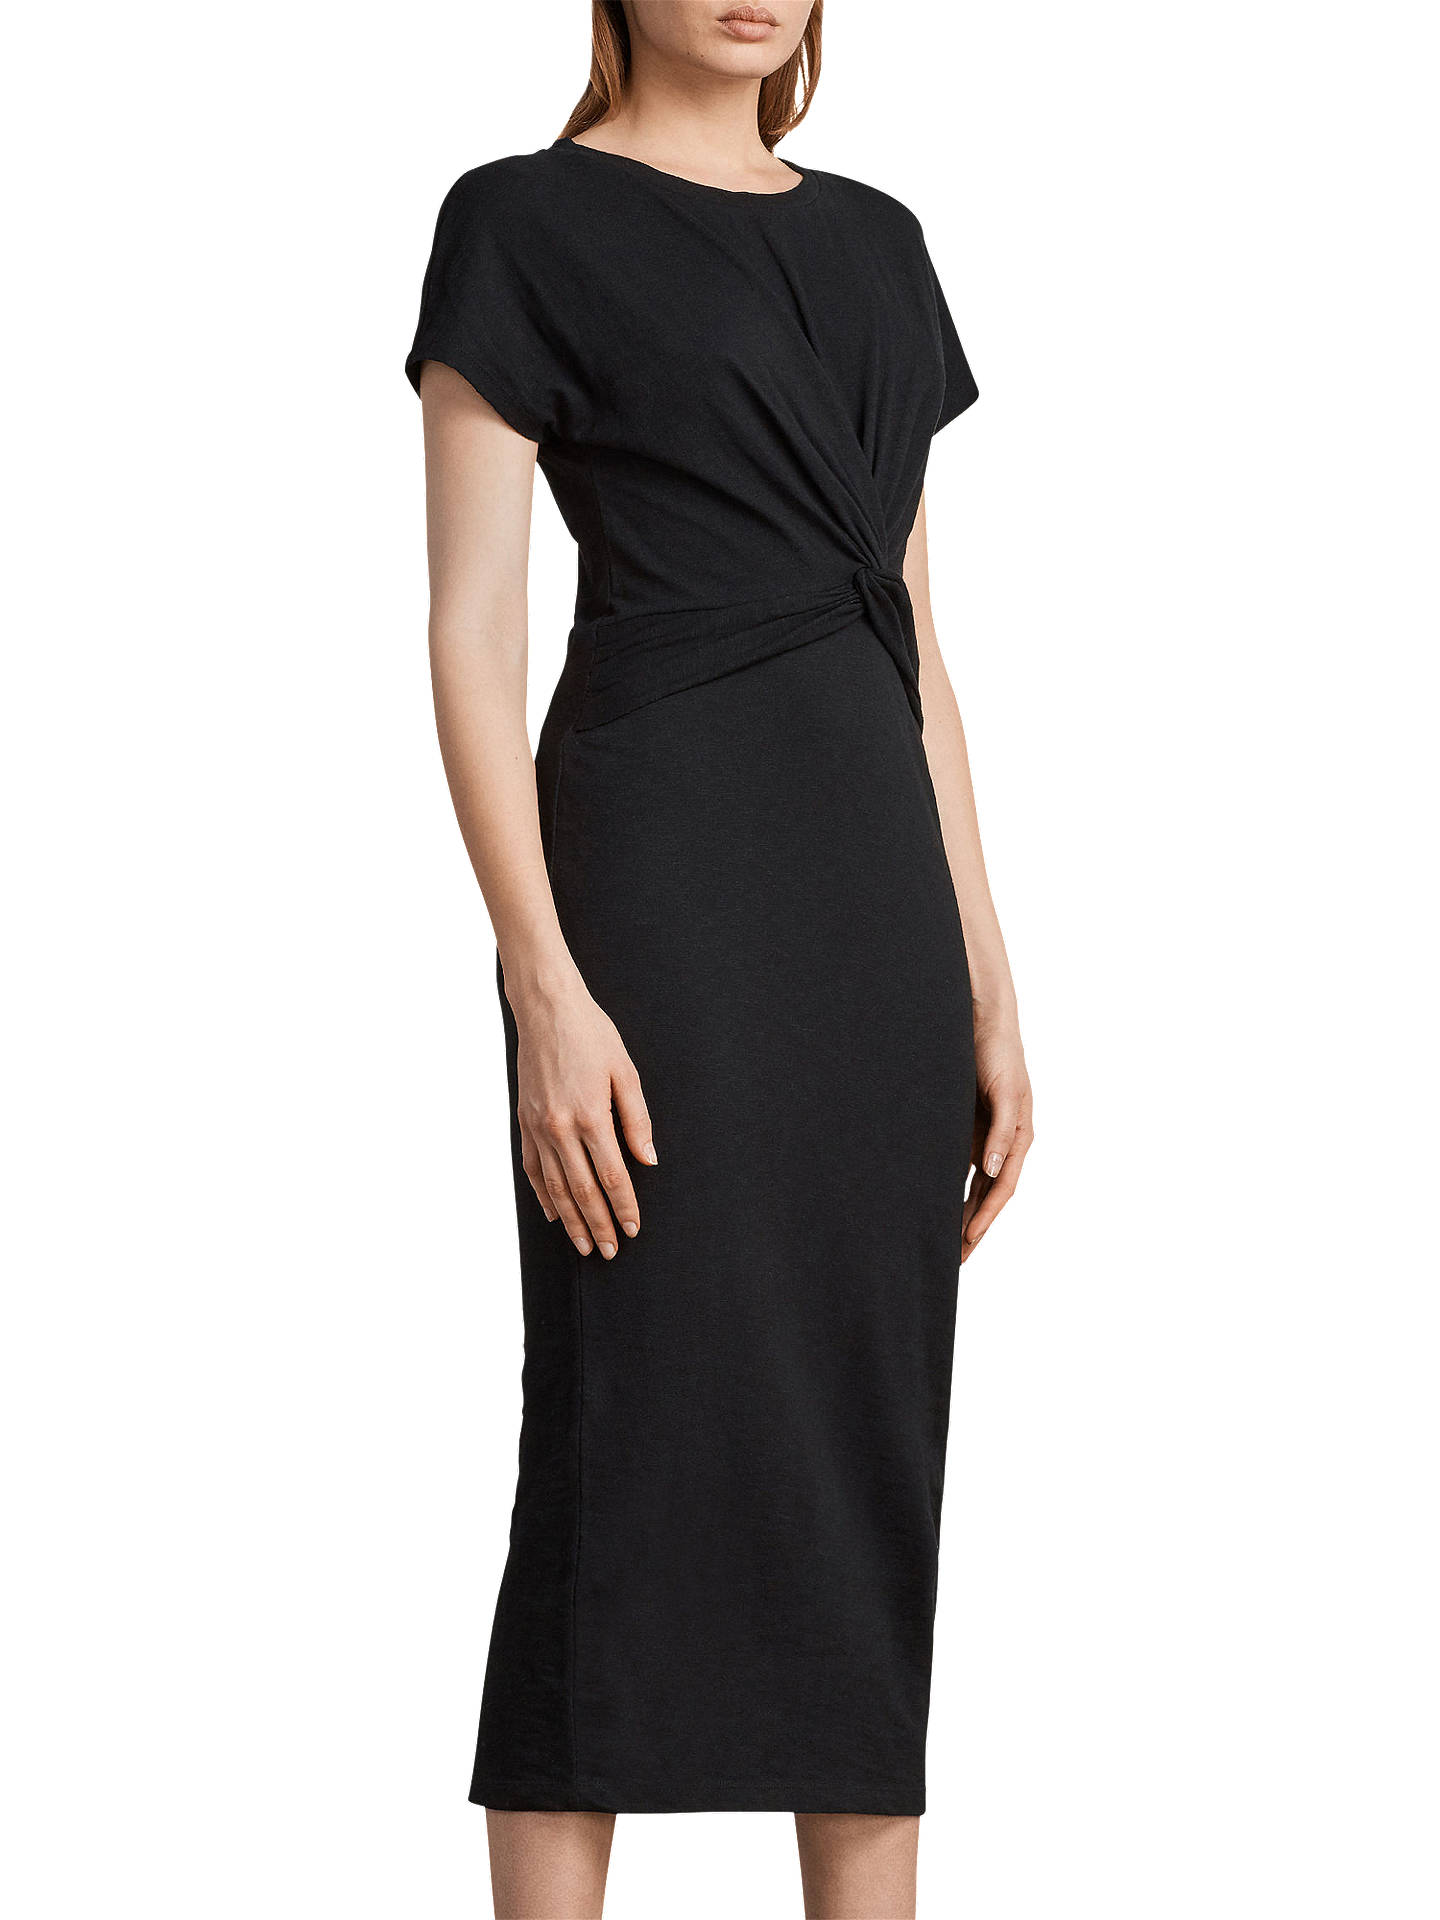 BuyAllSaints Paloma Long Dress, Black, XS Online at johnlewis.com